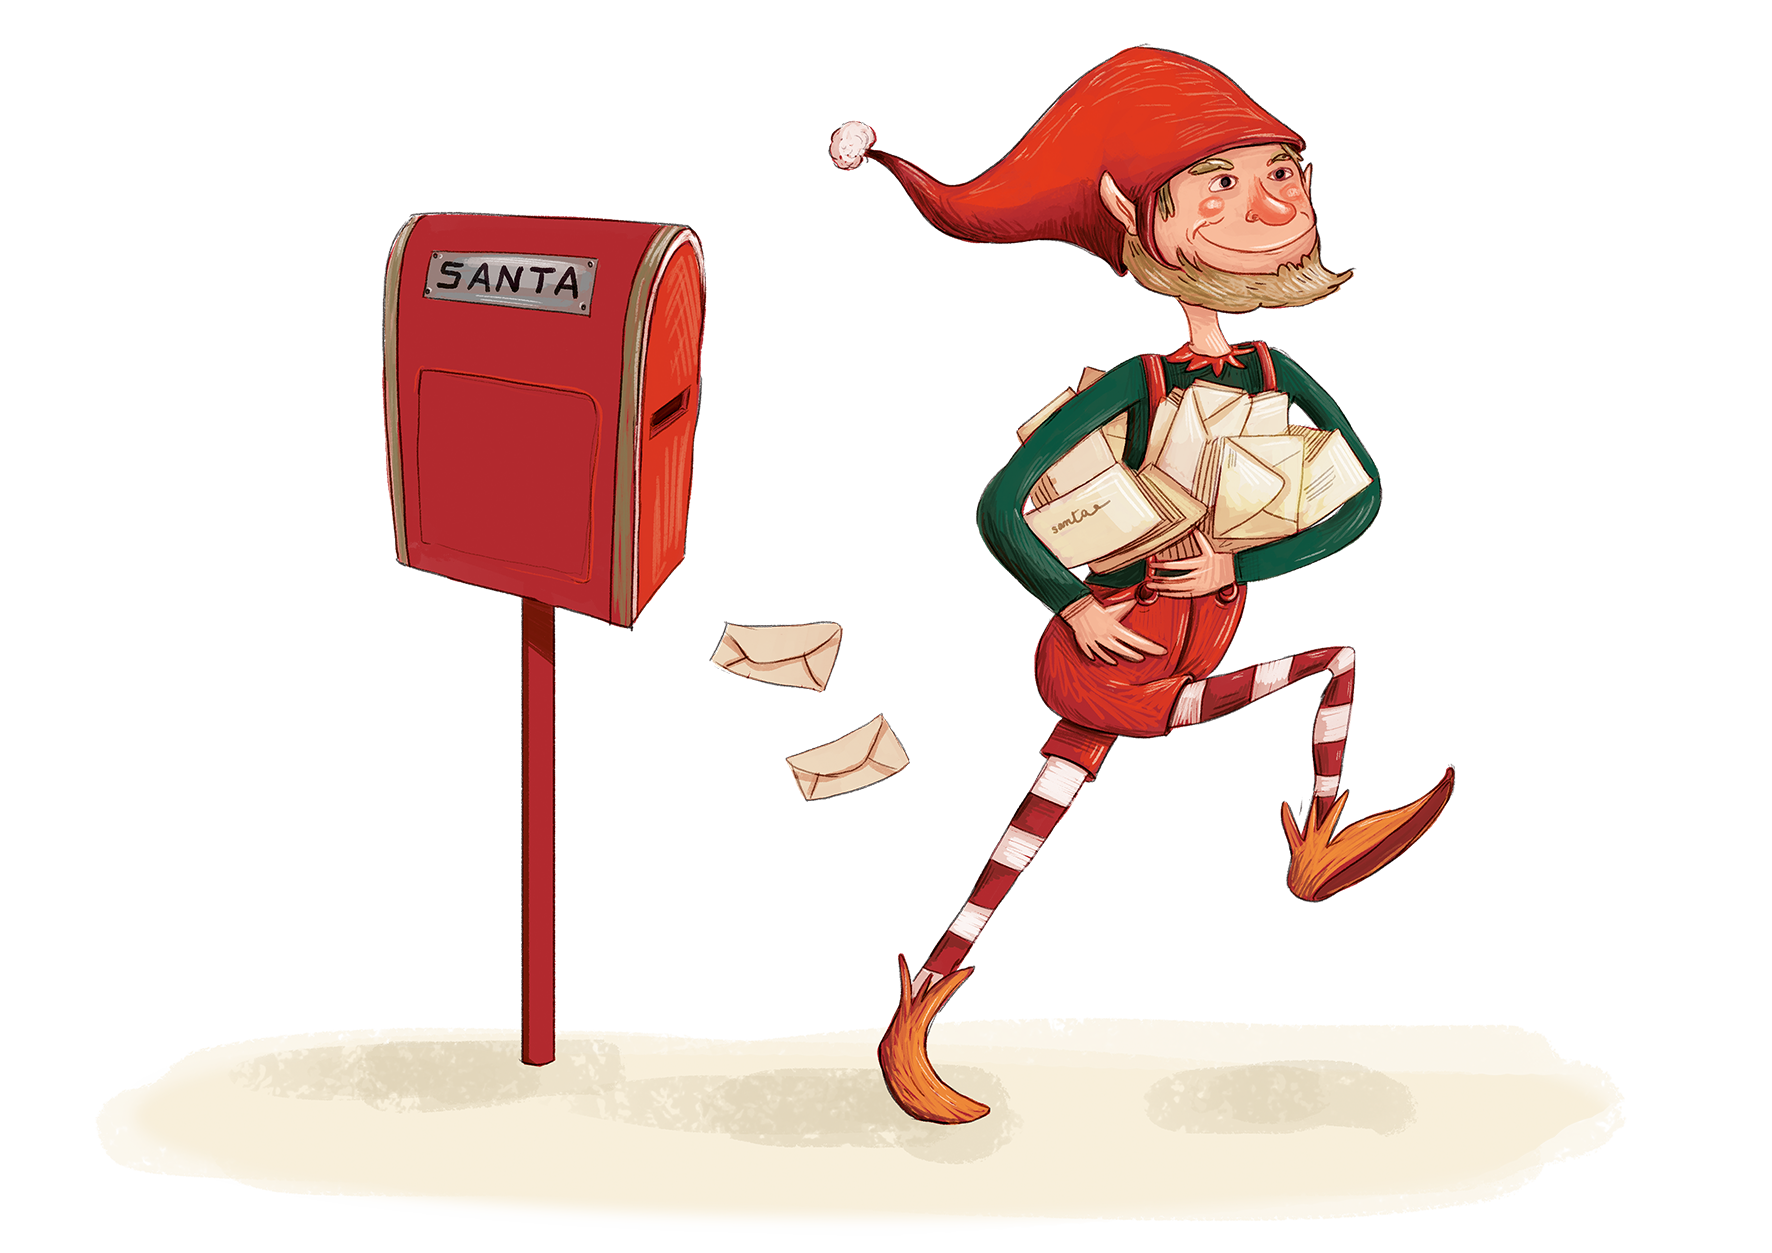 Elf+Santa'smail copy.png